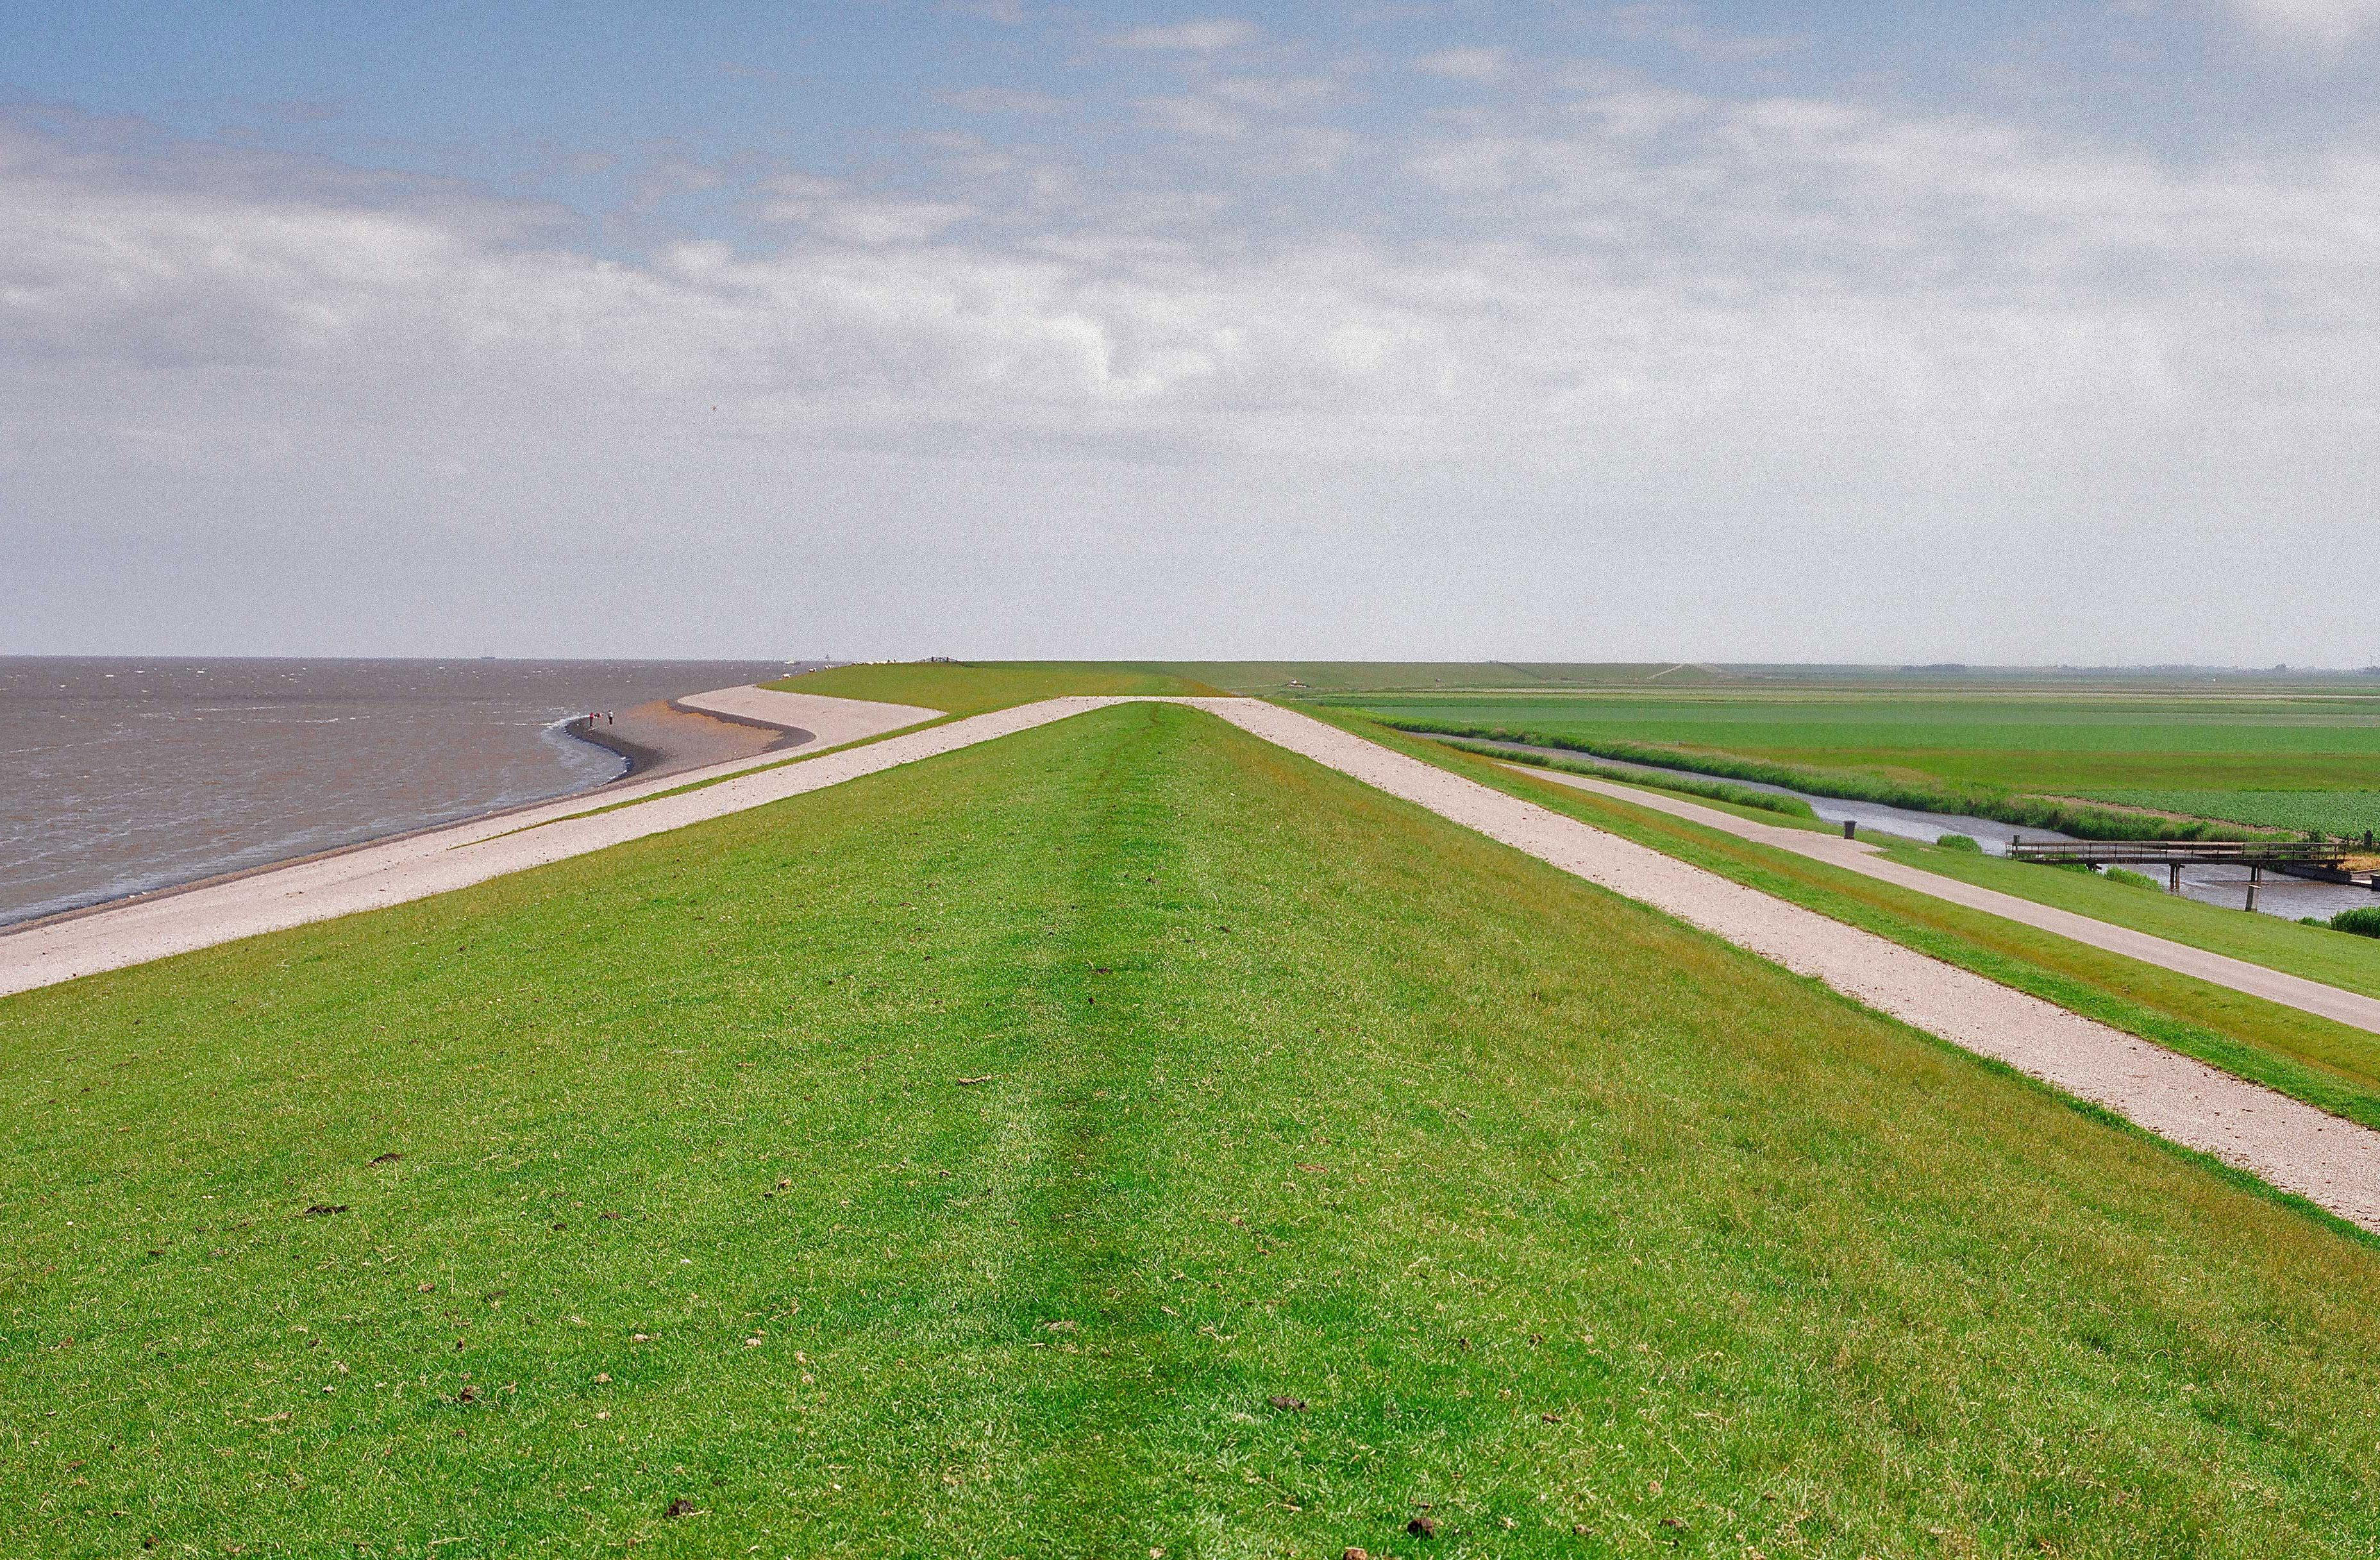 Waddendijk in Friesland